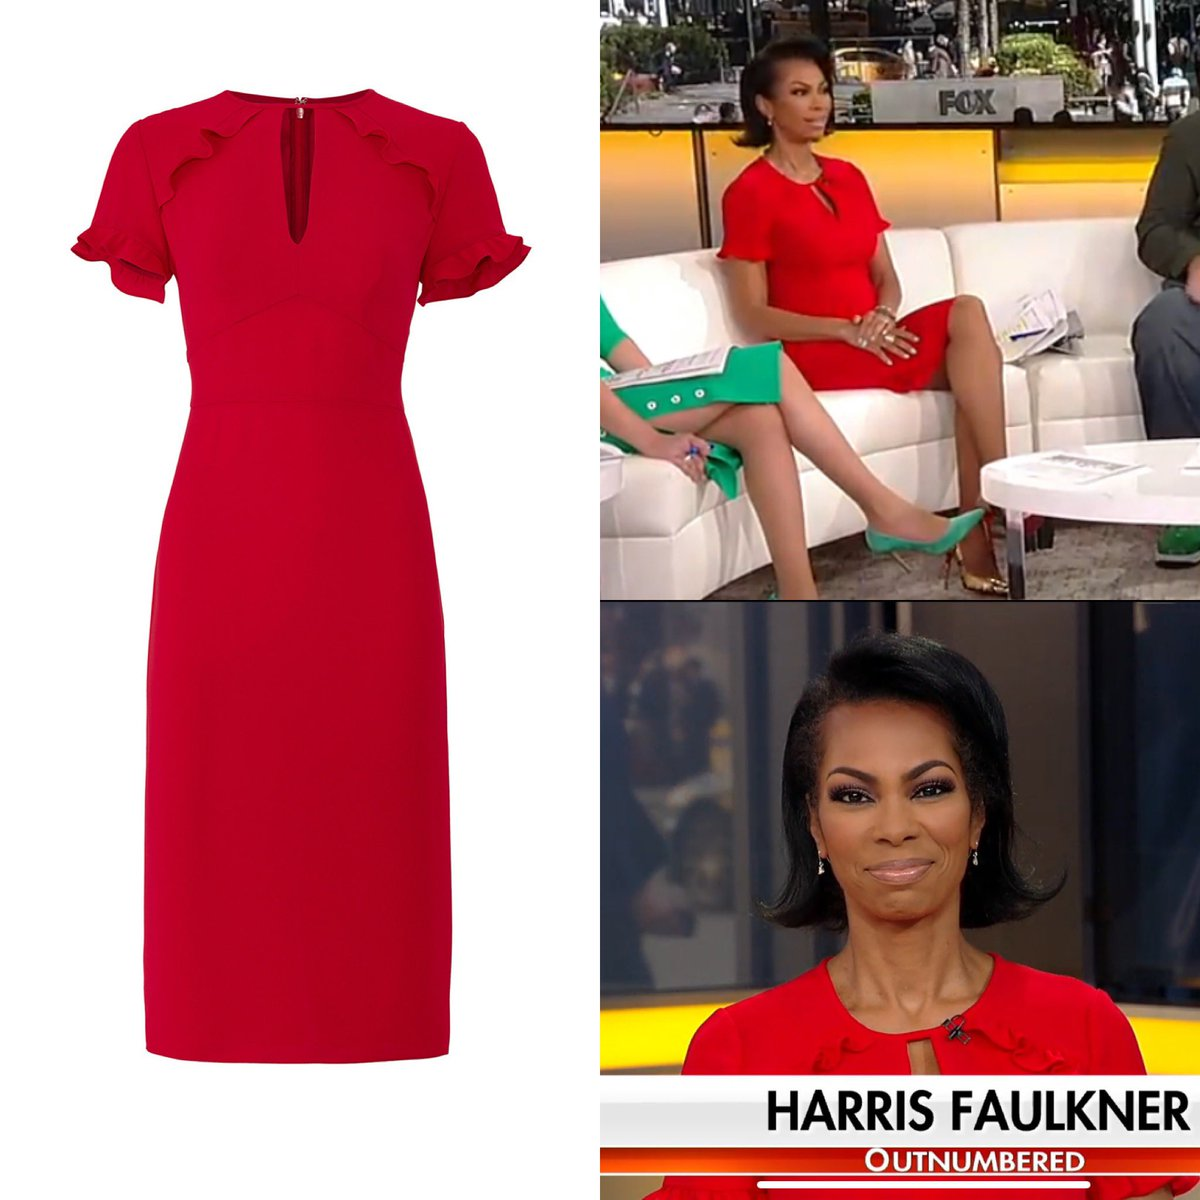 Harris Faulkner (@HARRISFAULKNER) wore a Shoshanna 'Santamarie' Red Keyhole Ruffle Sheath dress today on #Outnumbered - the dress is available via Rent the Runway. #harrisfaulkner #foxnews #foxnewsfashion pic.twitter.com/xvsU2uaeWF